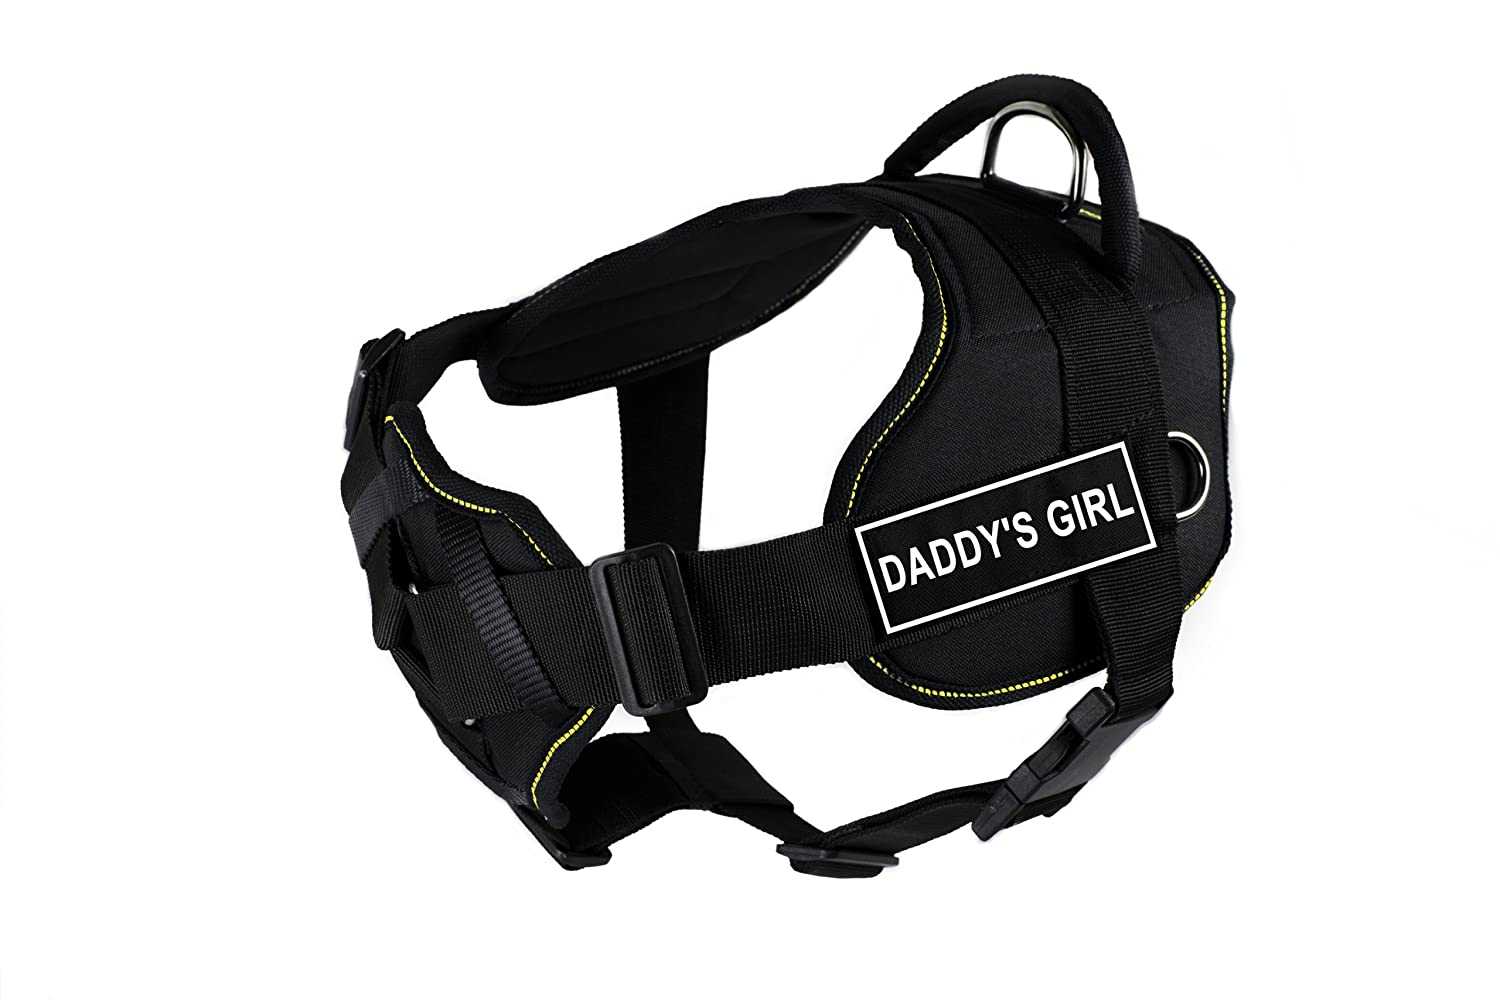 Dean & Tyler New DT FUN Dog Harness With Padded Chest Piece With 3 Straps, Yellow Trim Size  Medium (Will Fit  71cm 86cm) with  DADDY'S GIRL  Velcro Patches, Black White